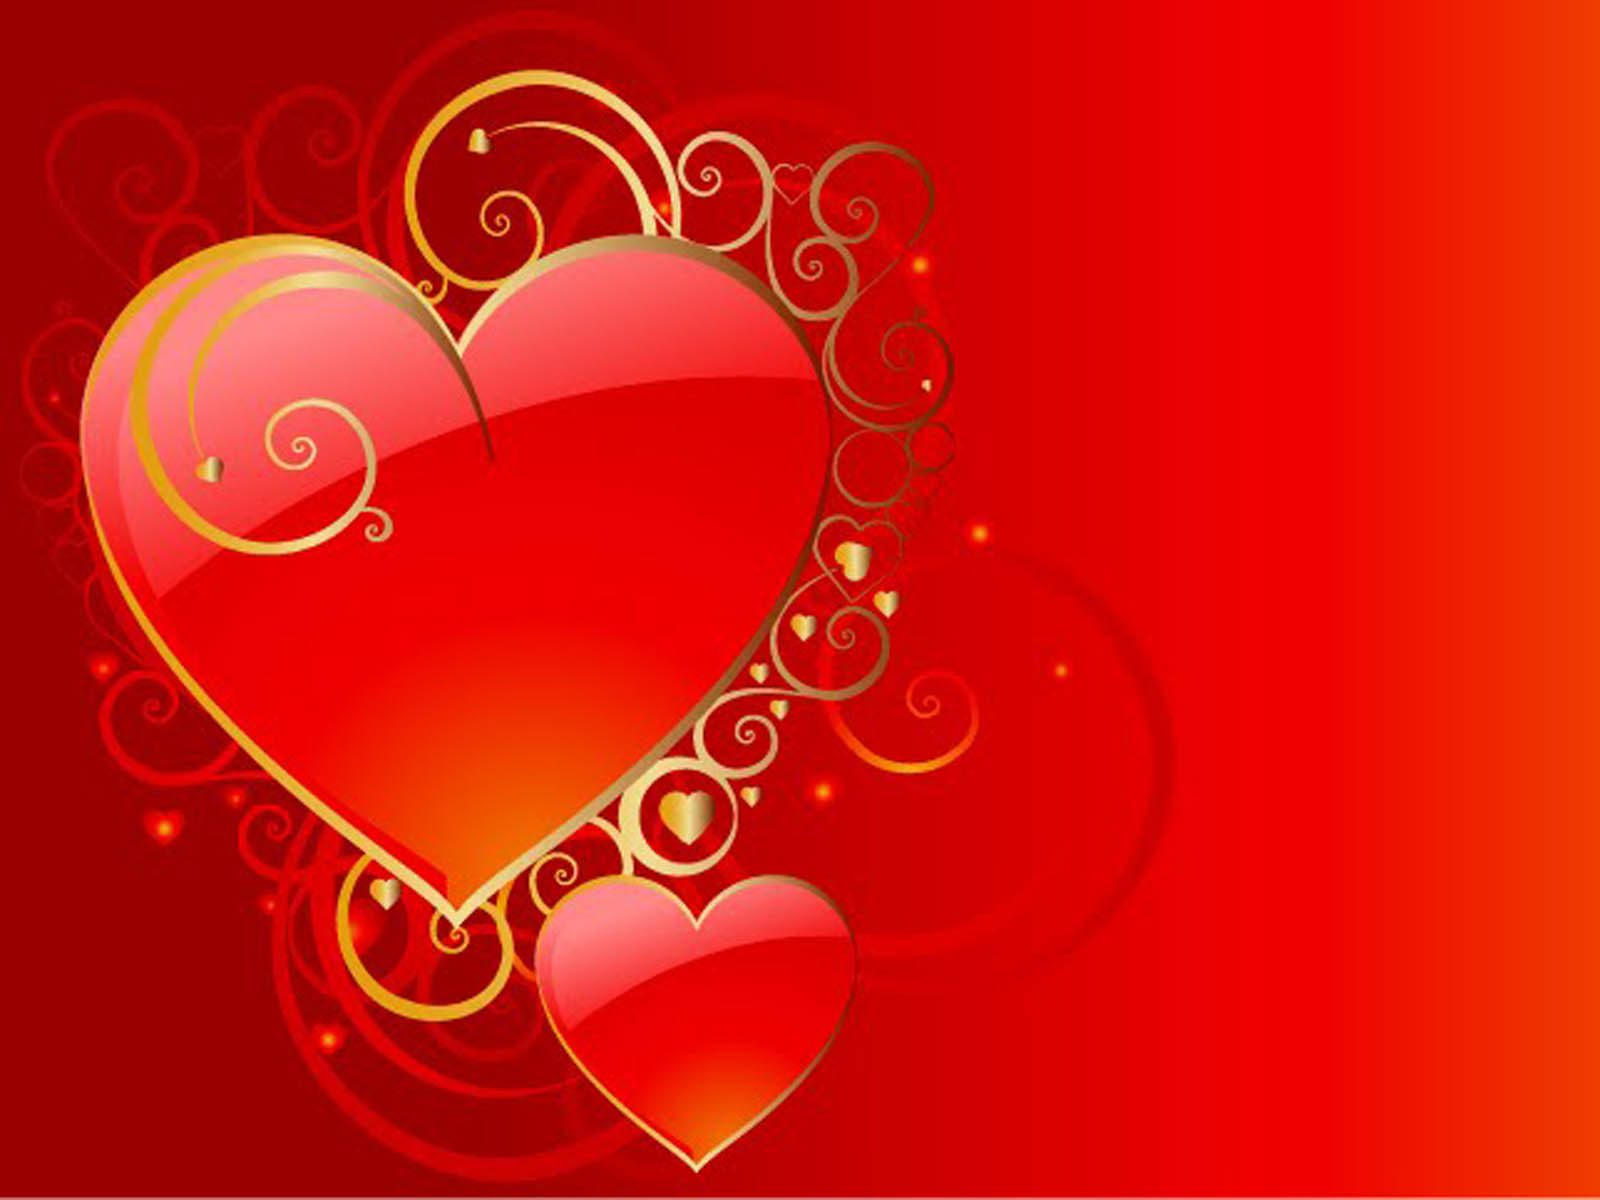 Love Heart Design Wallpaper : wallpapers: Love Heart Wallpapers